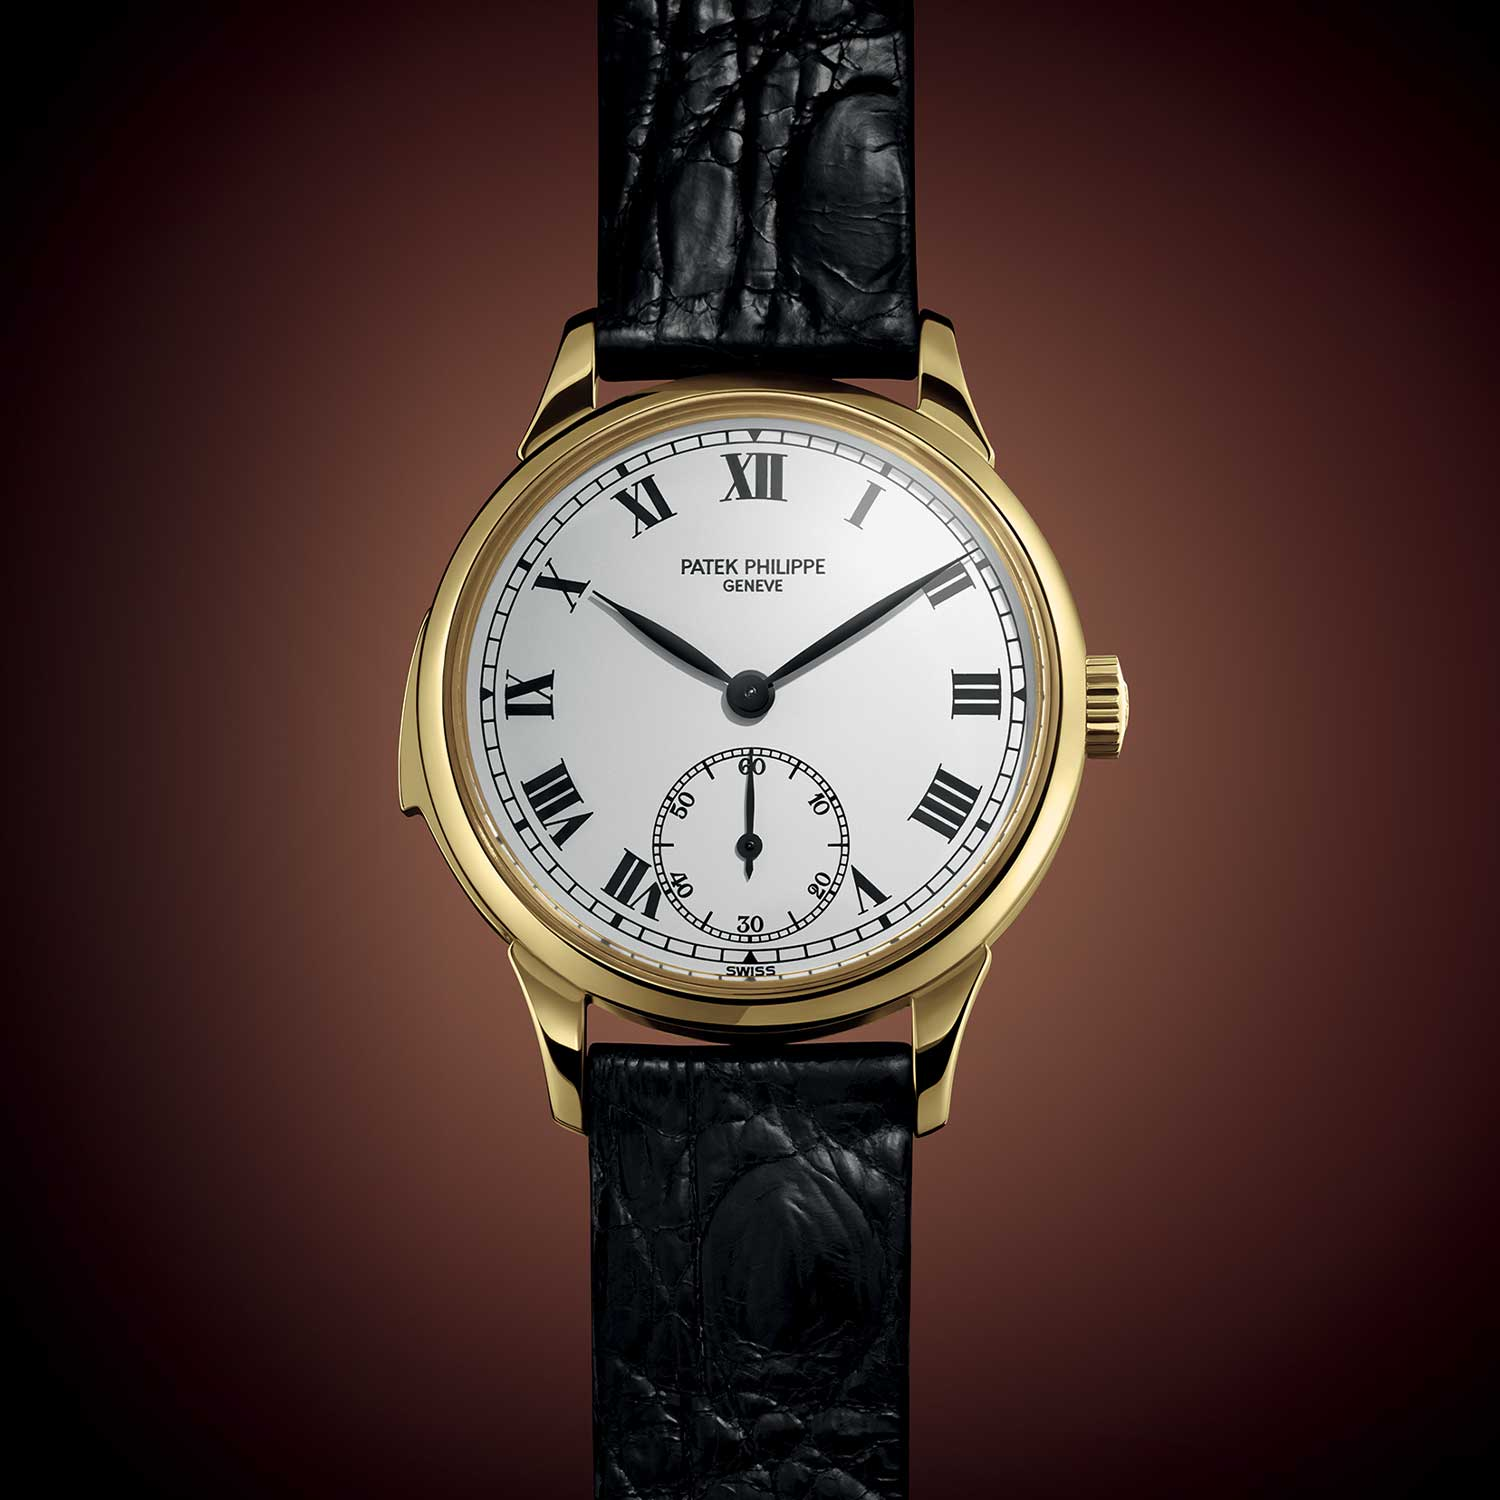 The ref. 3979 Tourbillon Minute Repeater introduced by Patek Philippe in 1989 on the occasion of its 150th anniversaryurbillon Minute Repeater introduced by Patek Philippe in 1989 on the occasion of it's 150th anniversary